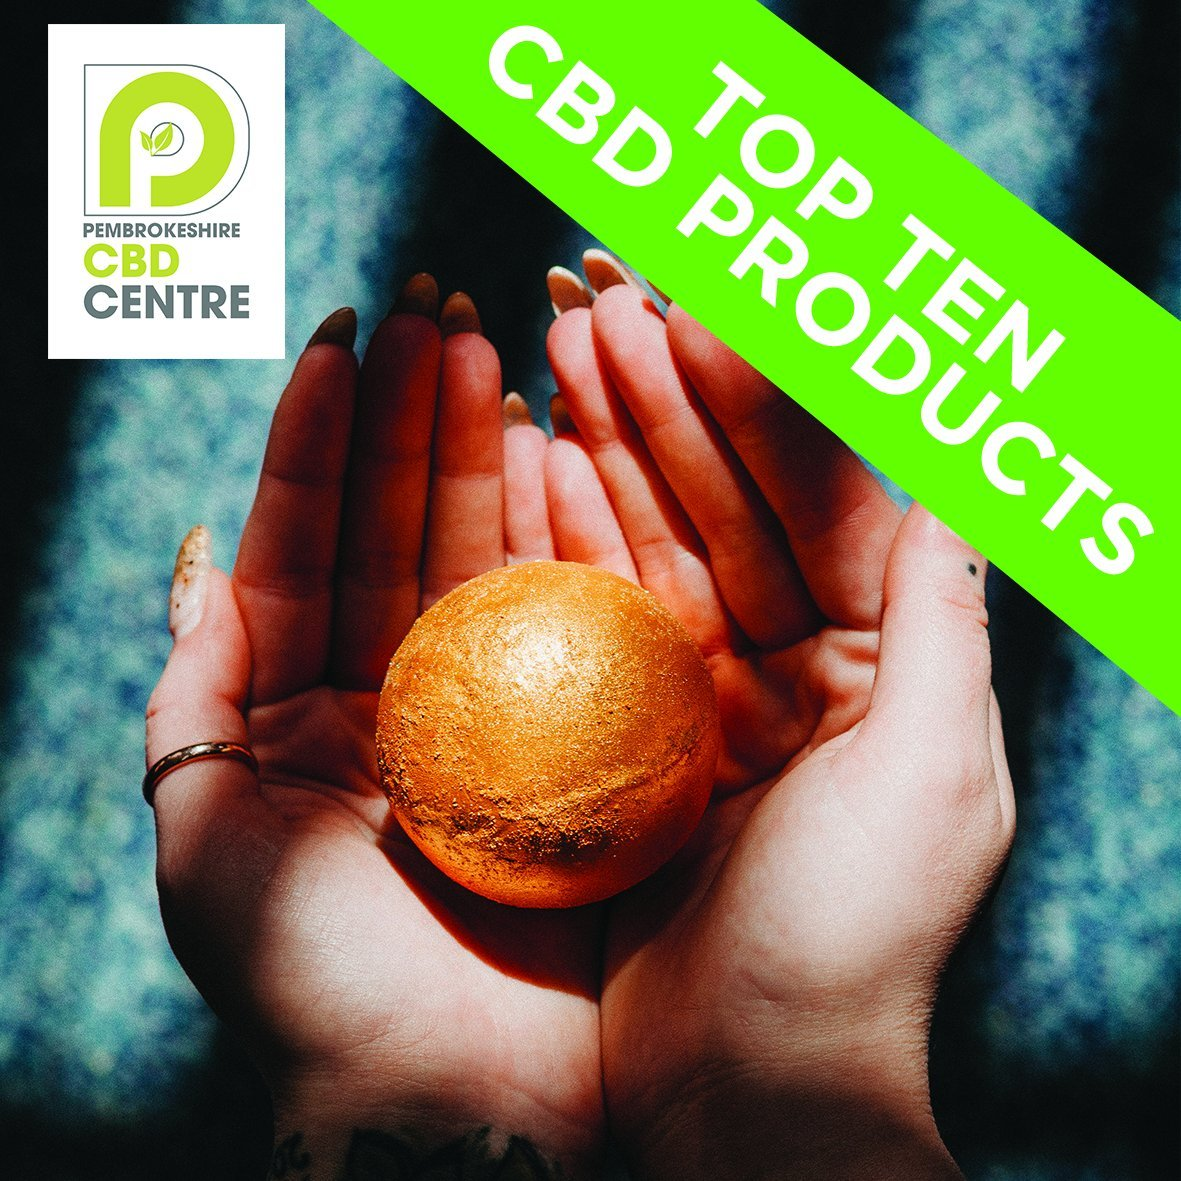 Top Ten CBD Products May 2020 UK